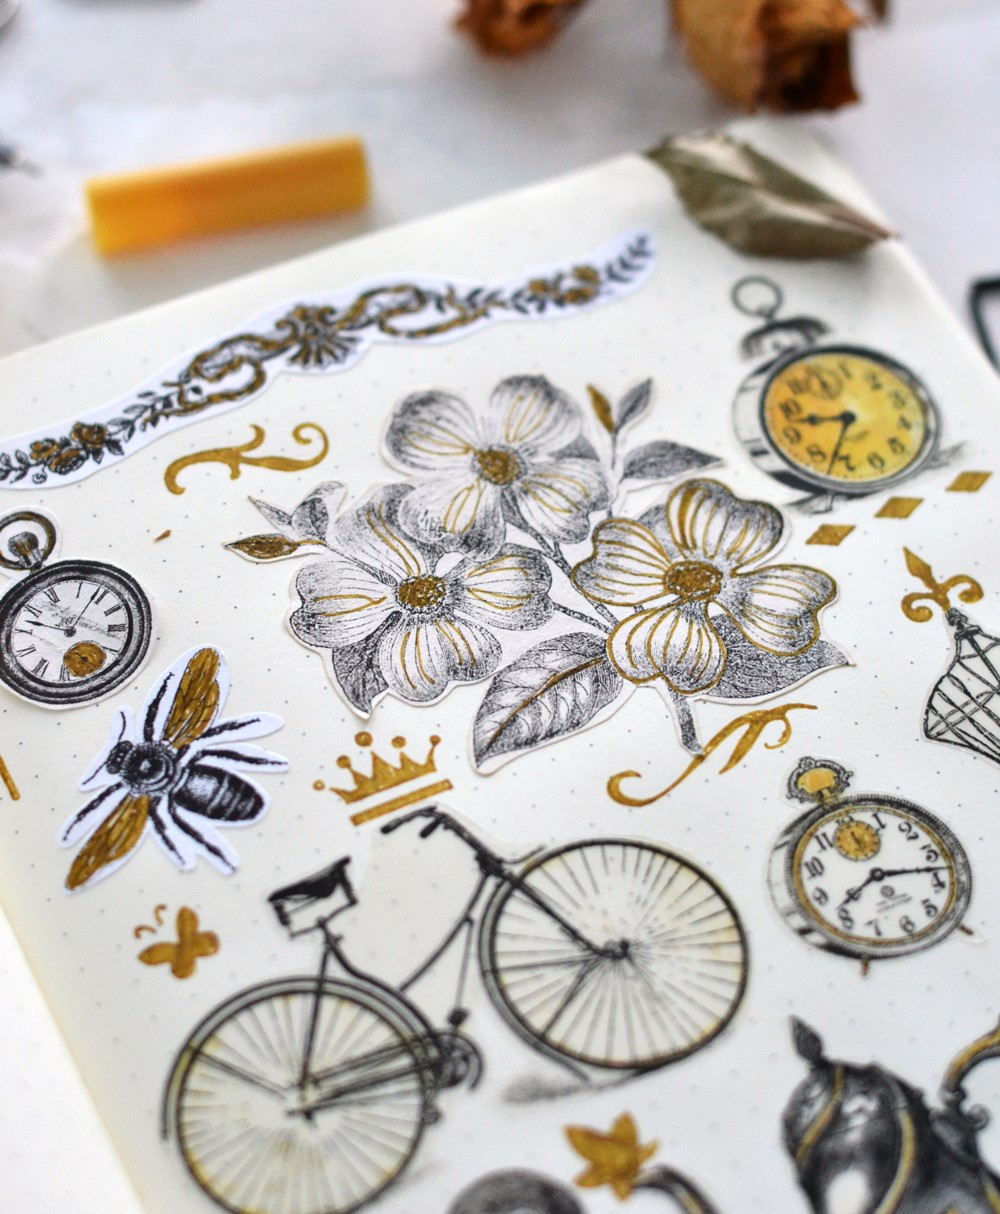 Learn how to make some amazing DIY vintage stickers using 3 types of paper ...and some coffee (to give the stickers a beautiful, antiqued look) #DIY #bulletjournal #stickers #vintage #crafts